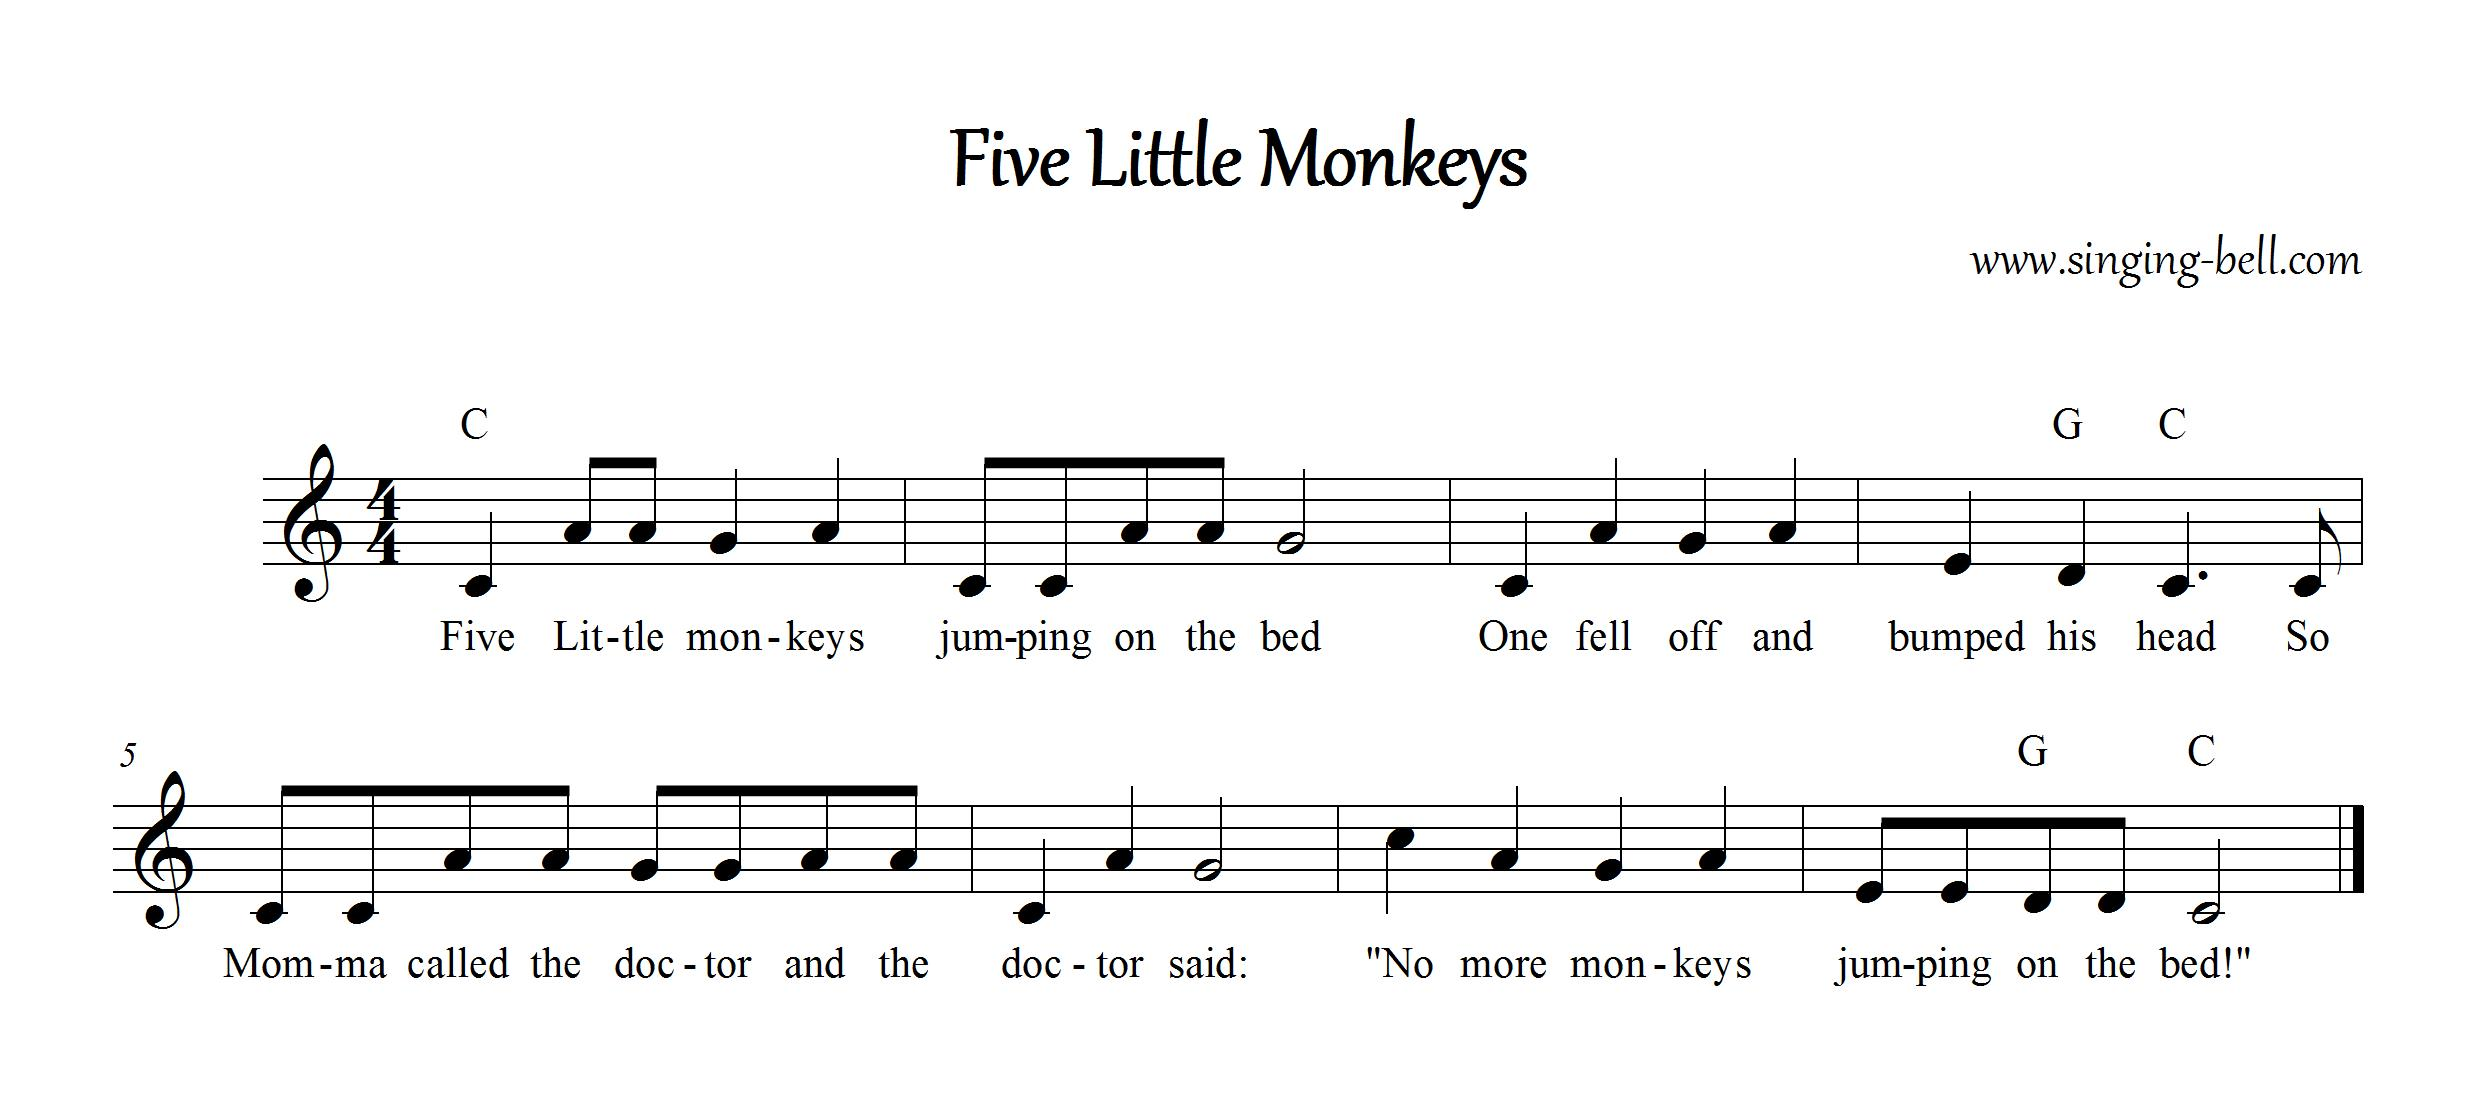 Five Little Monkeys Instrumental Nursery Rhyme - Free Music Score Download